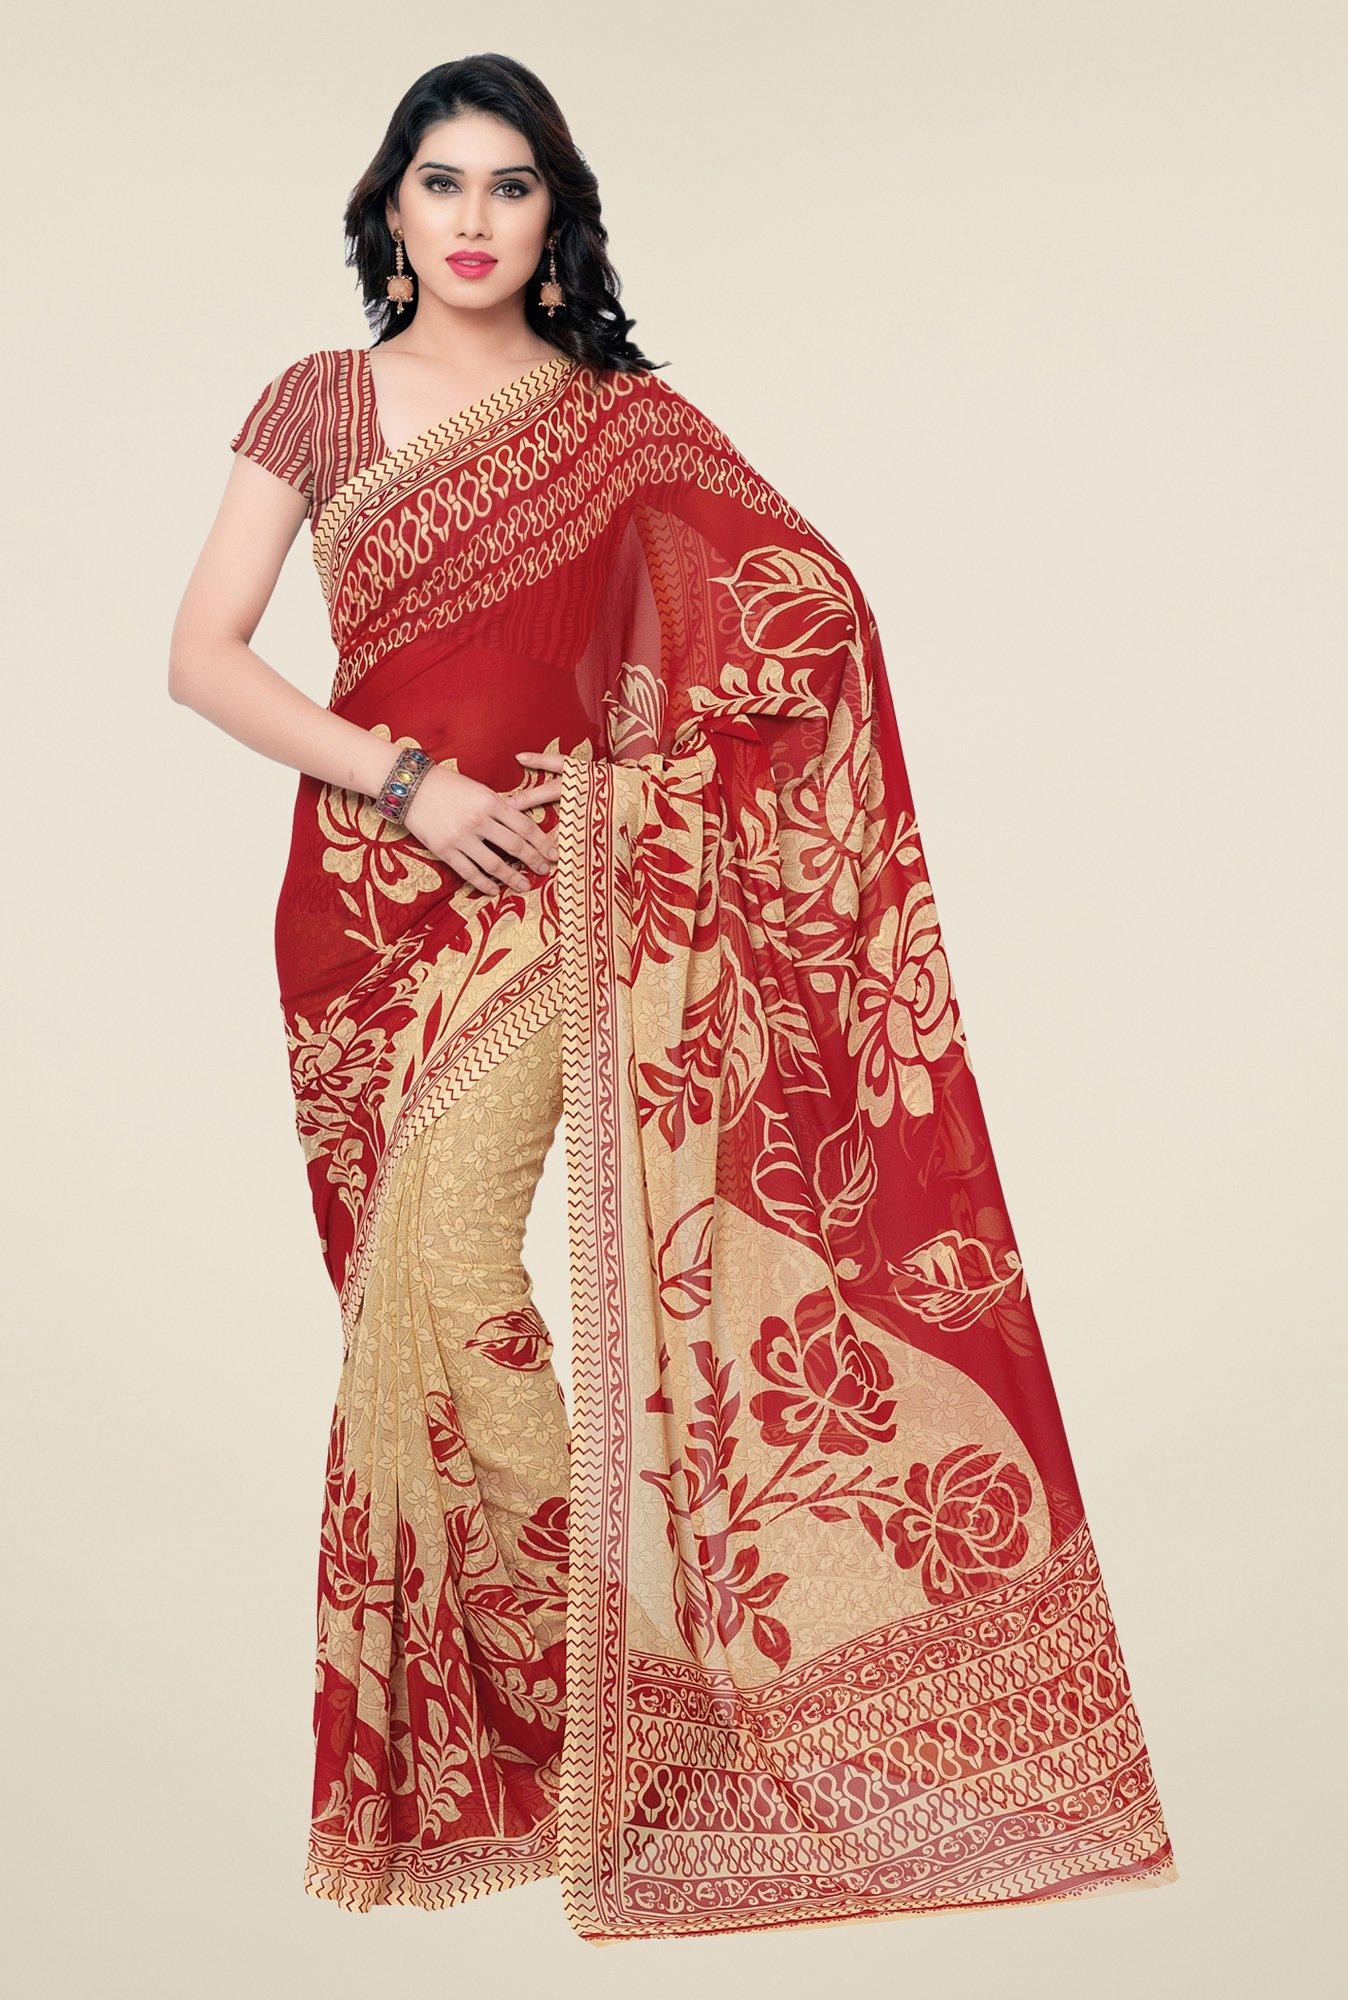 Triveni Red & Beige Floral Faux Georgette Saree